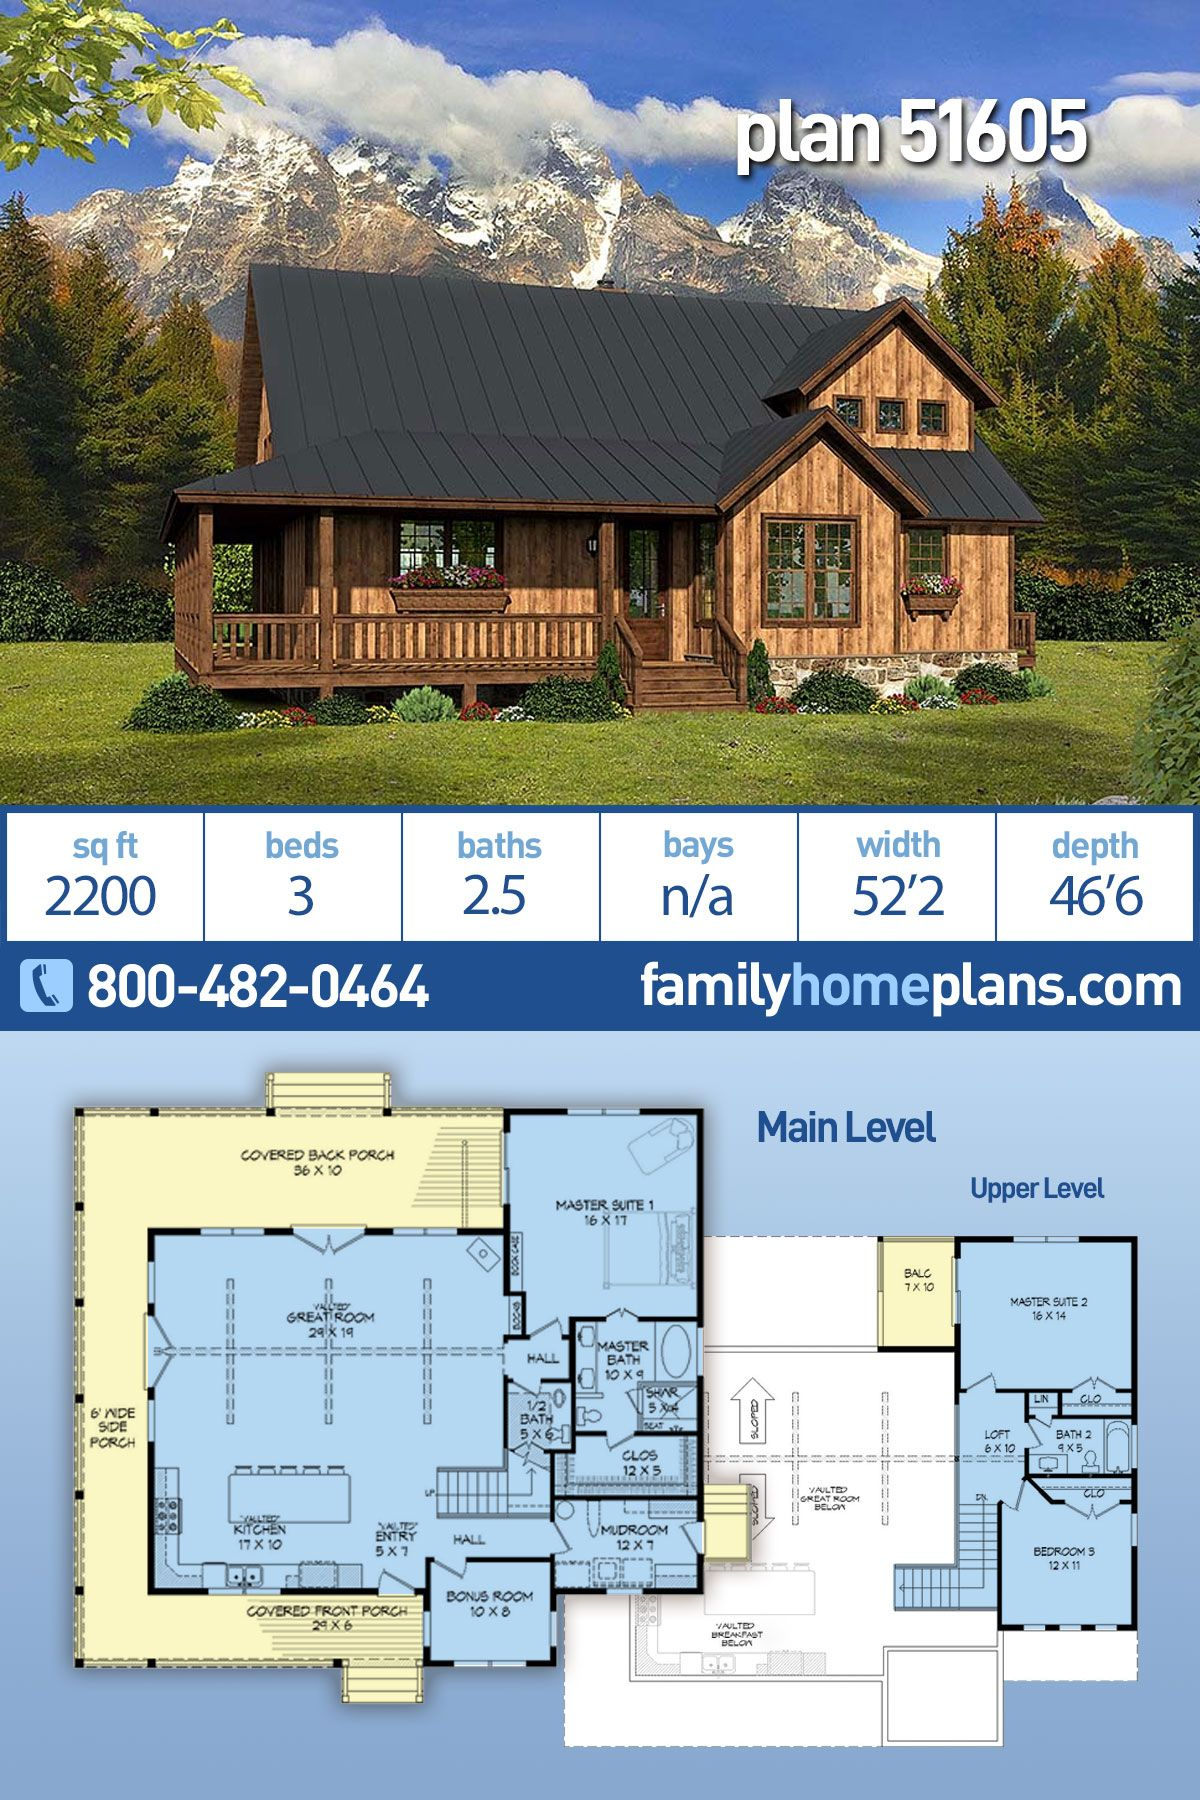 Southern Style House Plan 51605 With 3 Bed 3 Bath Rustic House Plans Country House Plans Cabin House Plans